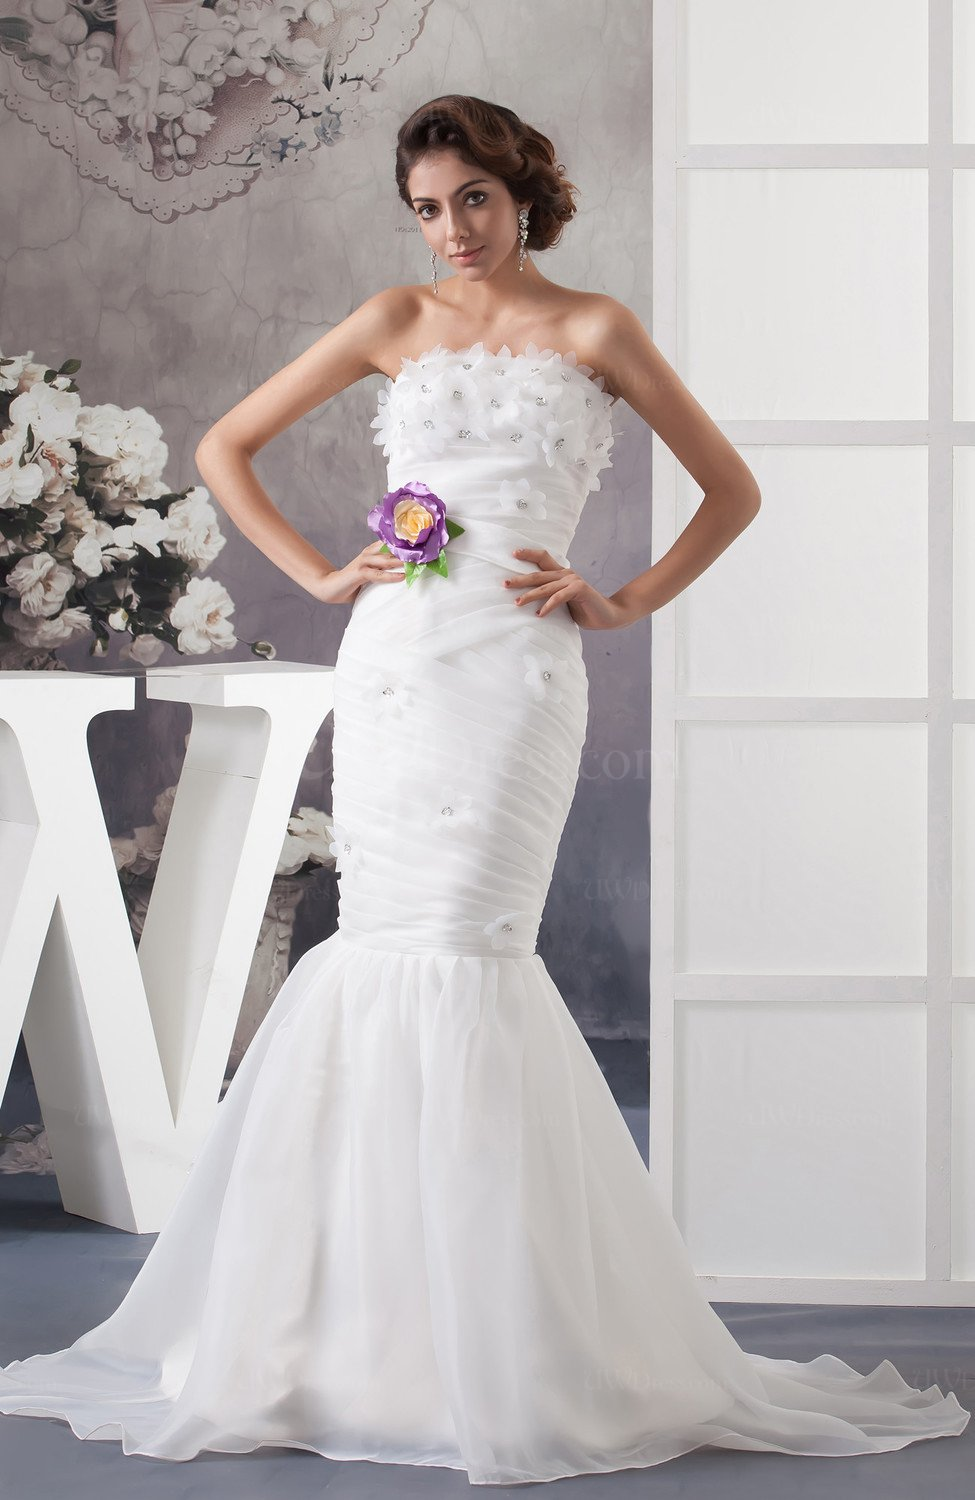 White Mermaid Bridal Gowns Allure Winter Elegant Backless